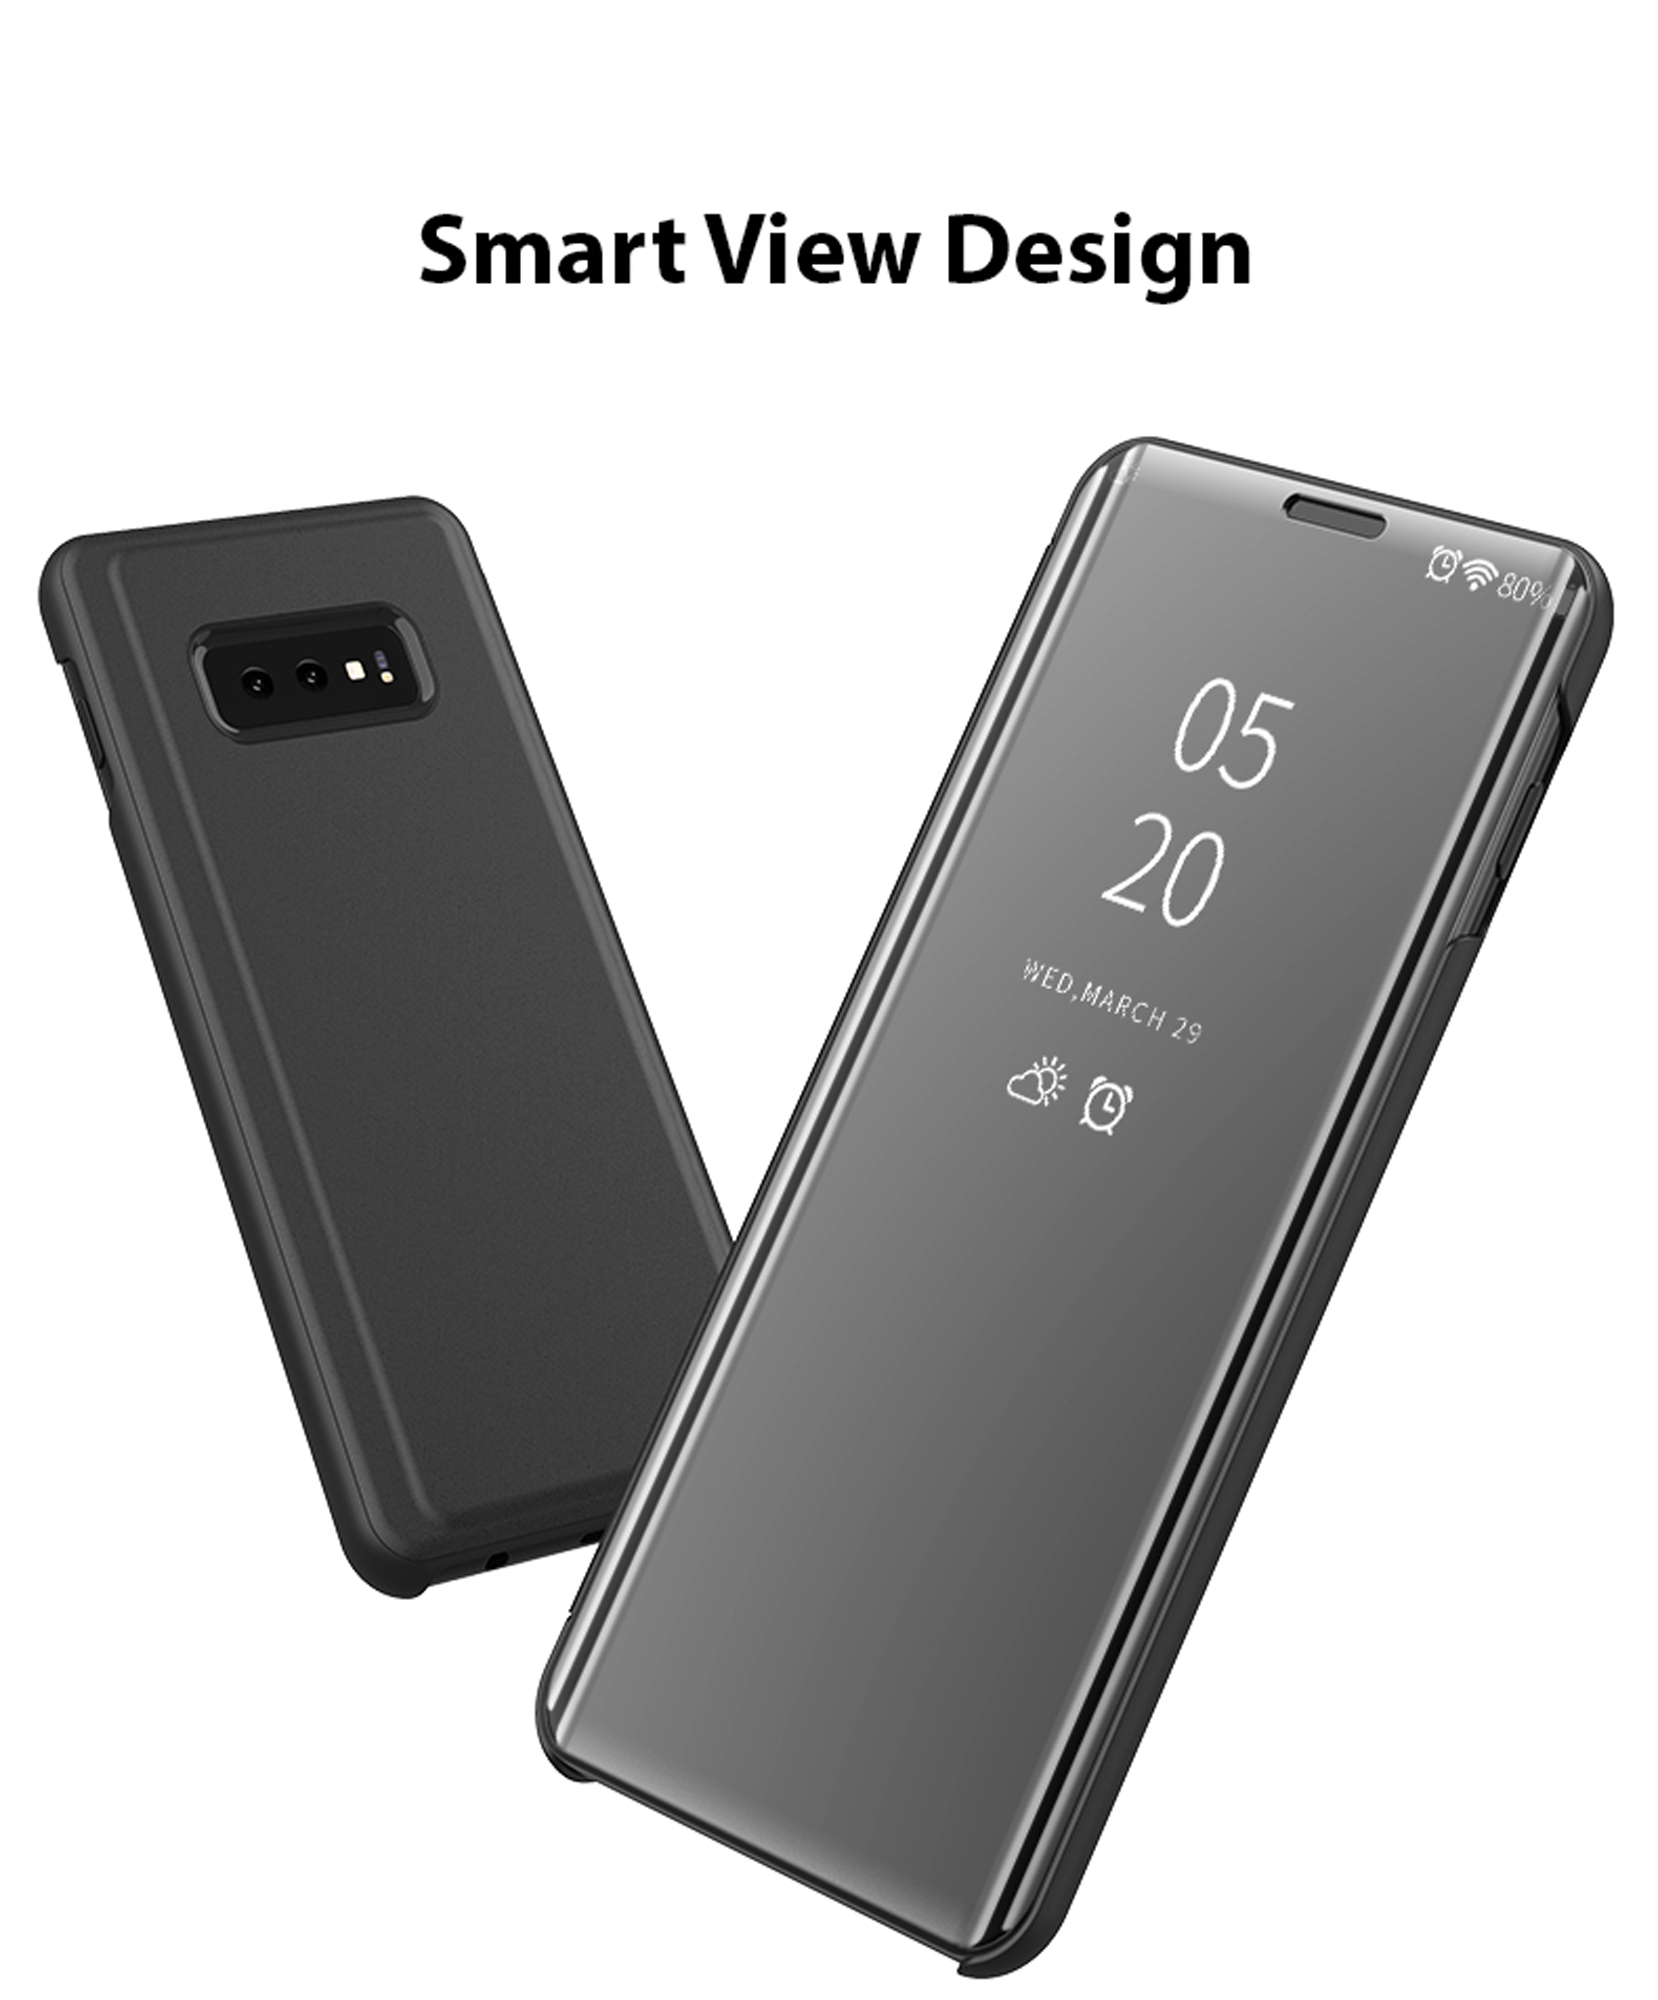 New-Samsung-Galaxy-S9-S10-Plus-Smart-View-Mirror-Leather-Flip-Stand-Case-Cover thumbnail 26